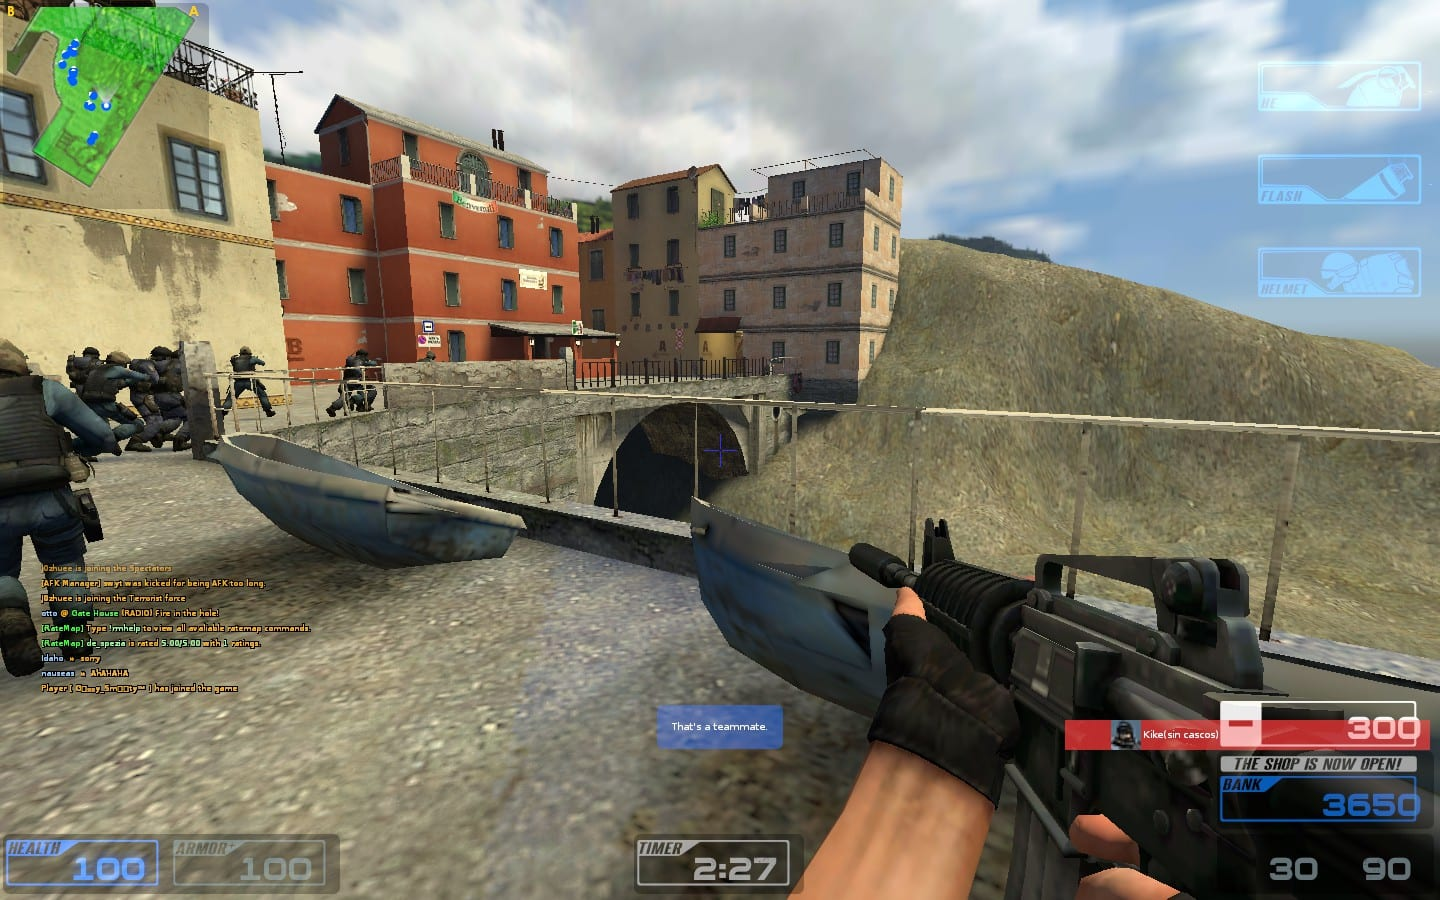 Captura de pantalla de Counter Strike: Source